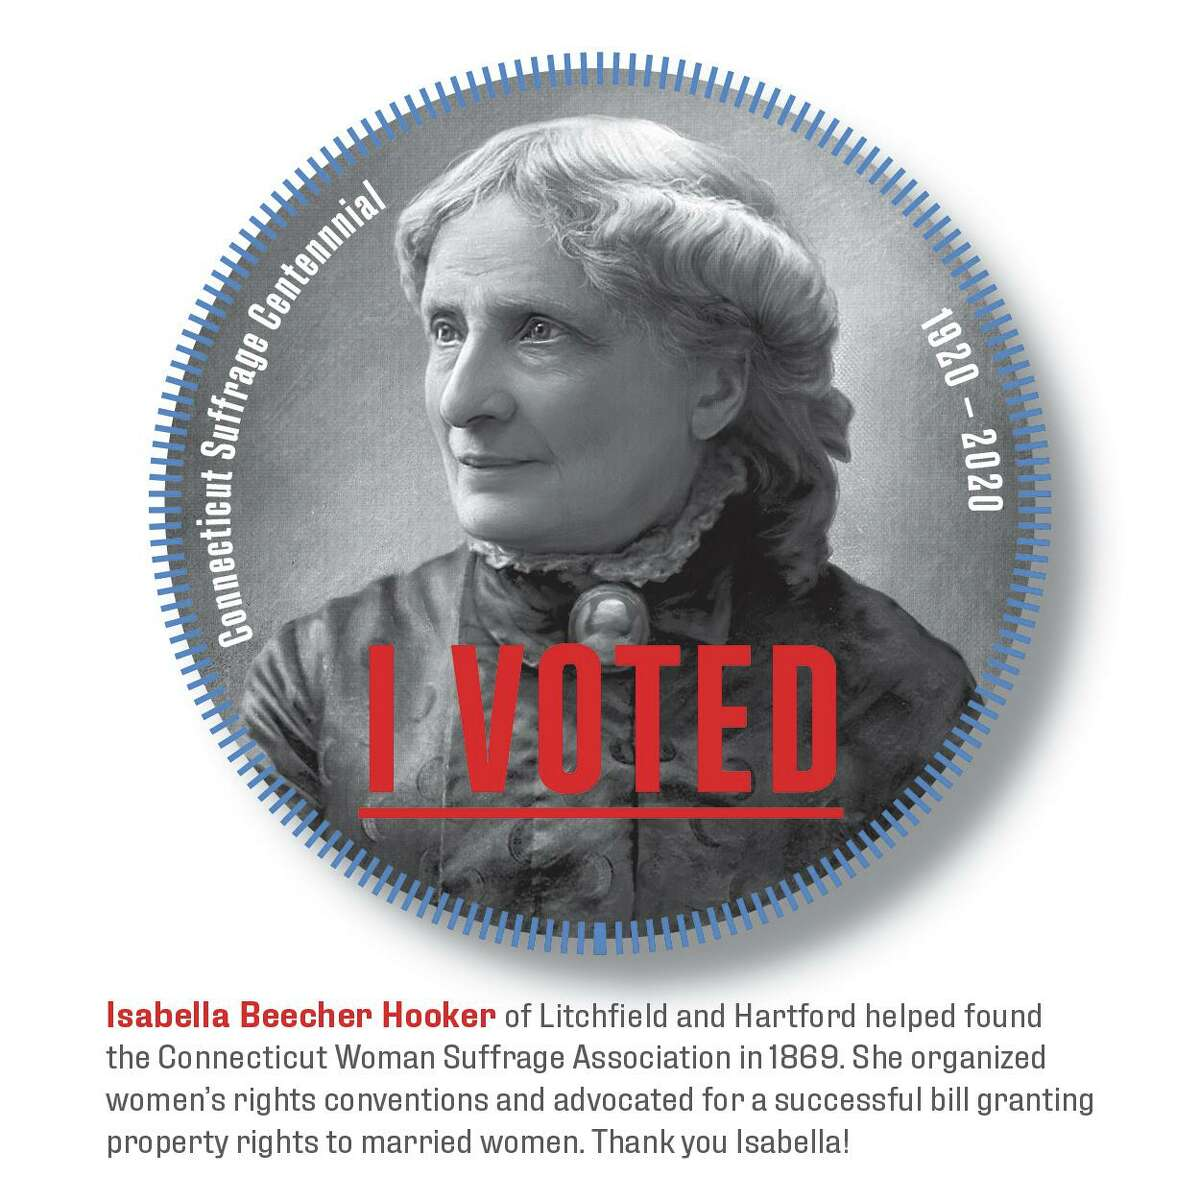 An early proponent of women's suffrage, Isabella Beecher Hooker did not live to see passage of the 19th Amendment.